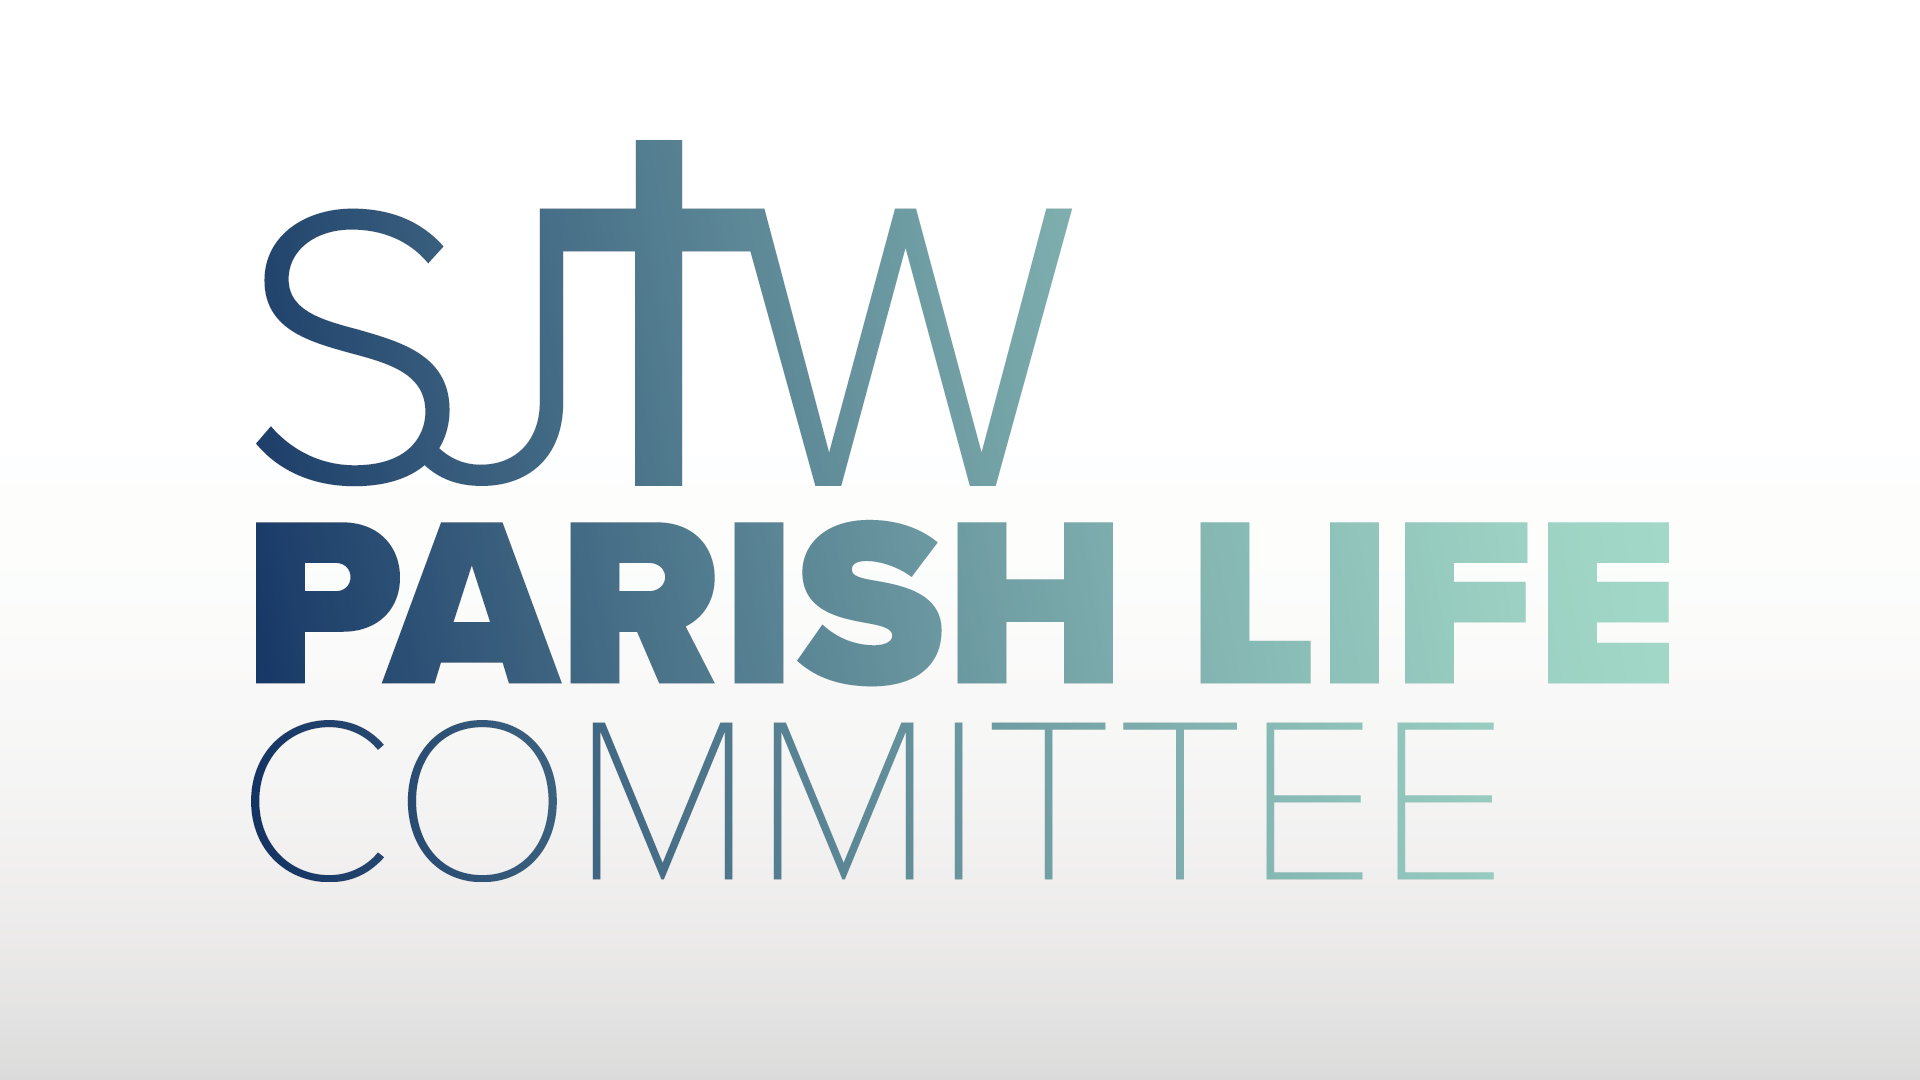 Parish Life Committee Meeting